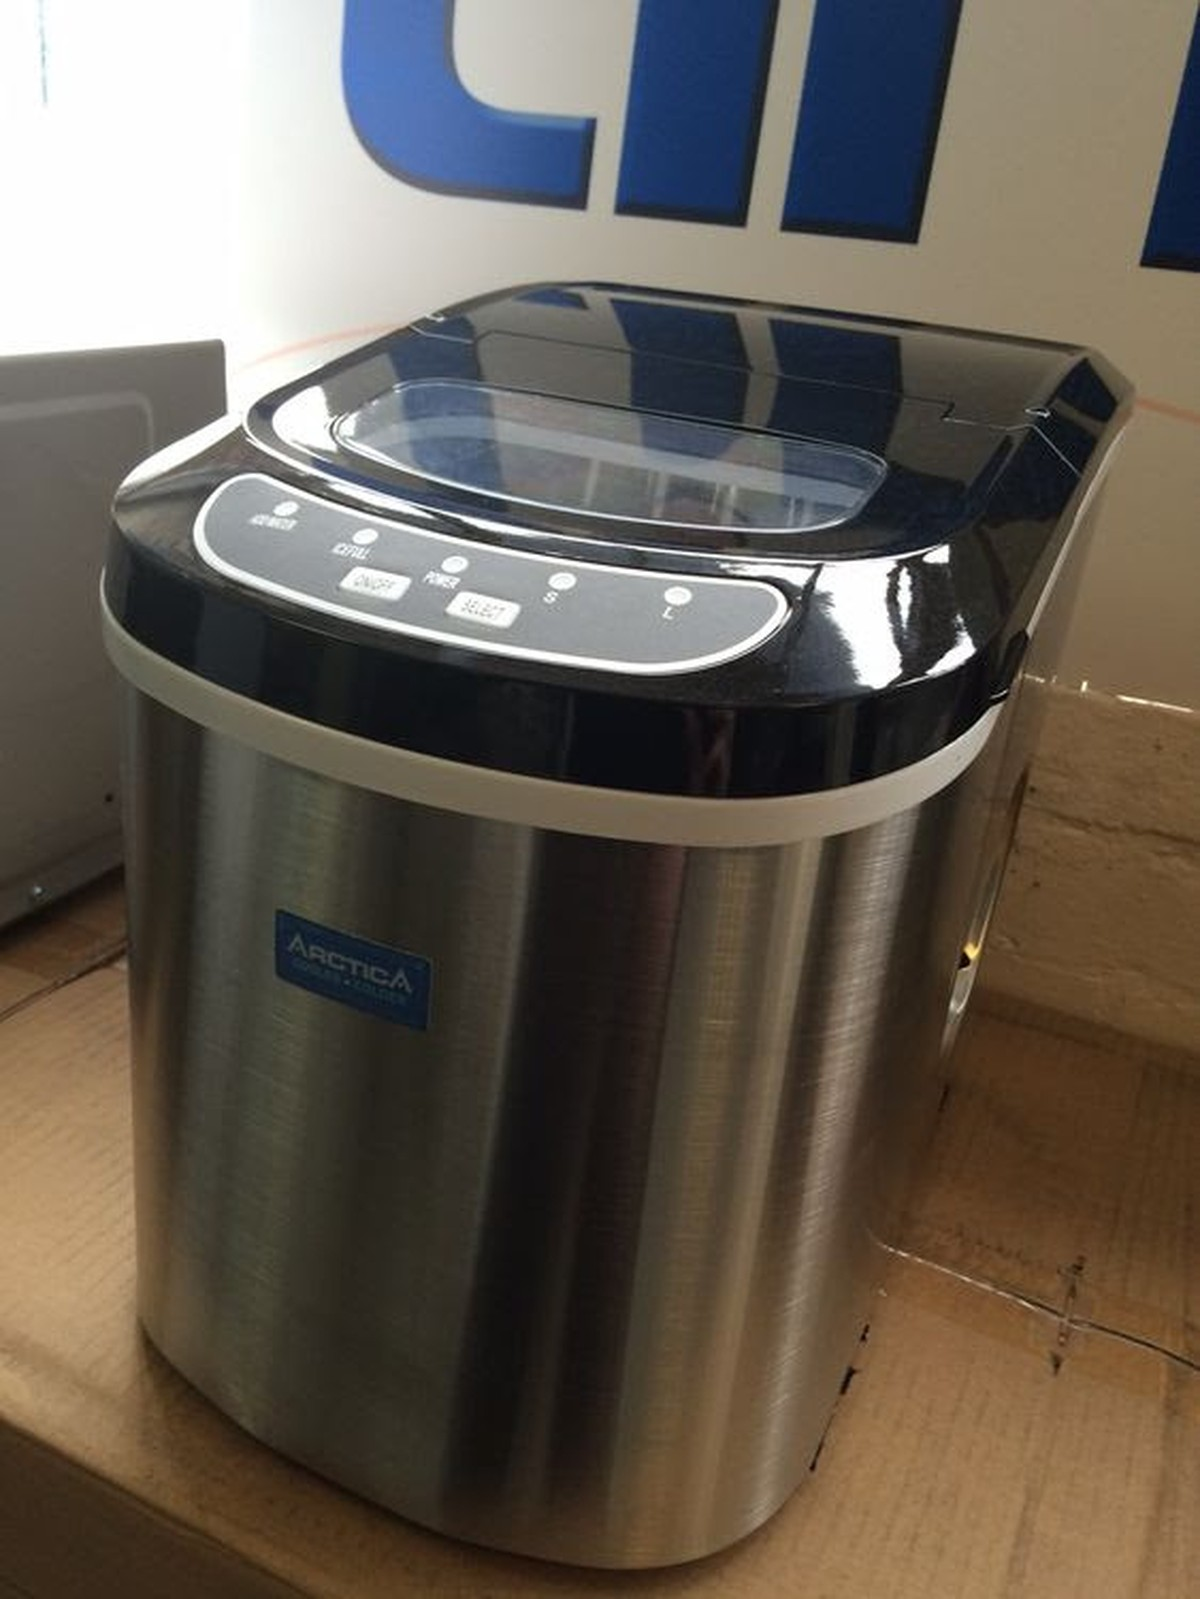 Countertop Ice Maker For Sale : ... - Gloucester New Arctica Countertop Ice Maker - Gloucester